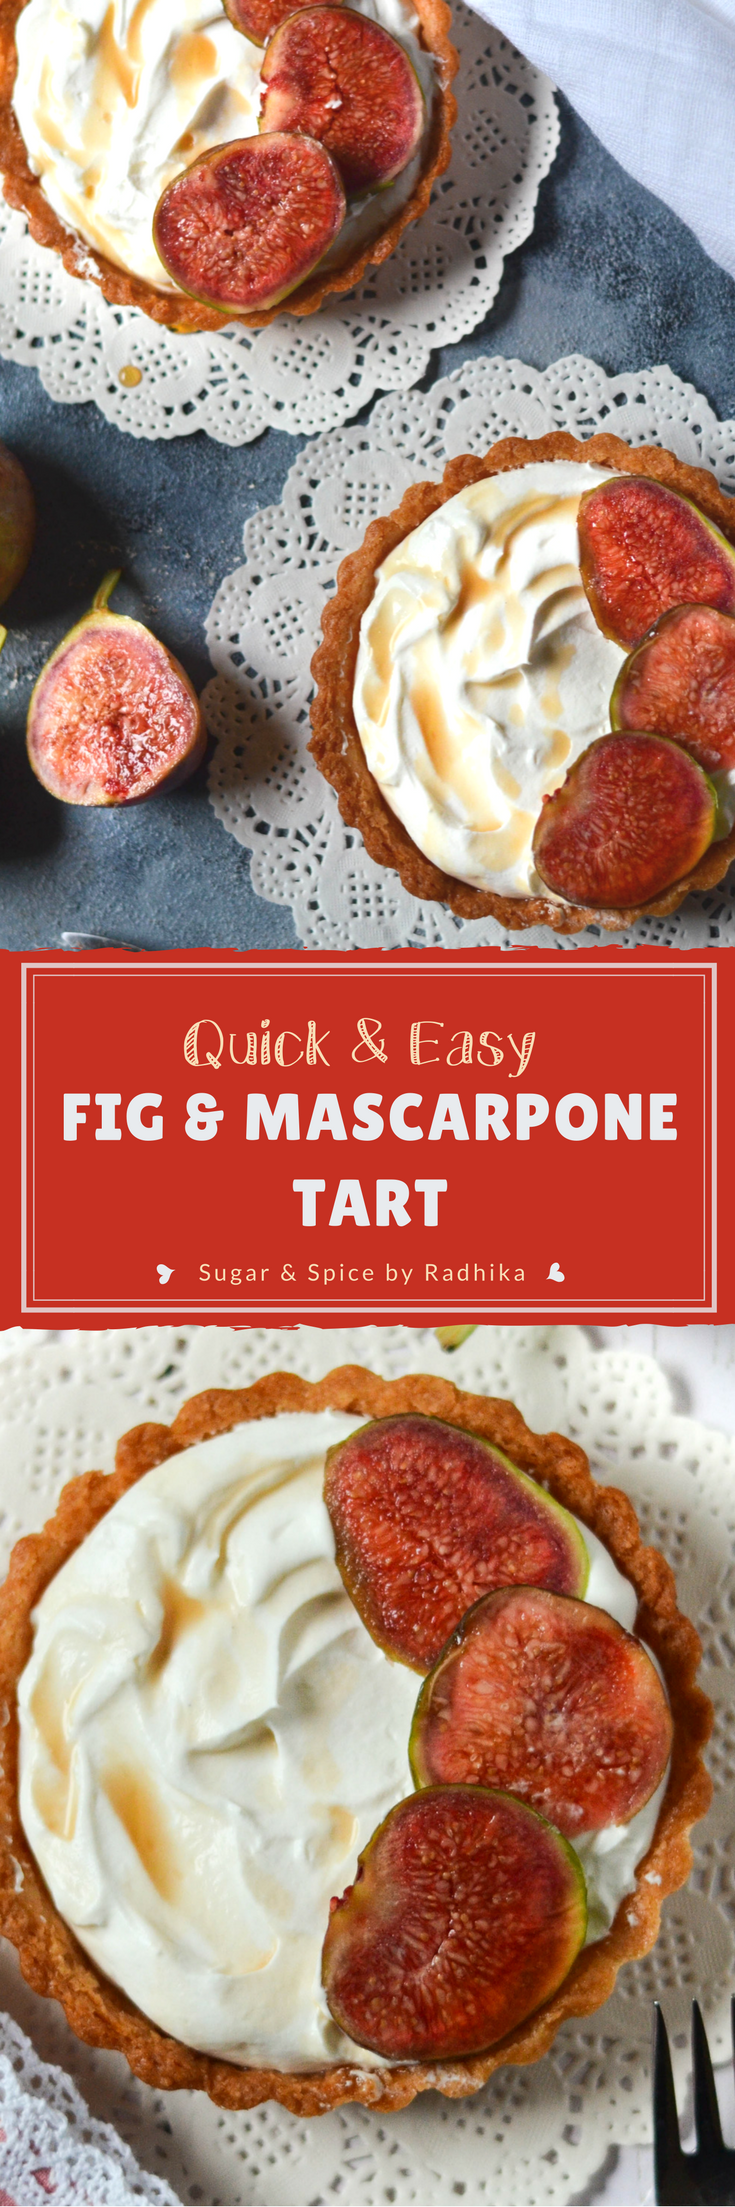 Fig and Mascarpone Tart:Up your dessert game this winter, with an easy-to-prepare and deliciously creamy Figs and Mascarpone Tart.